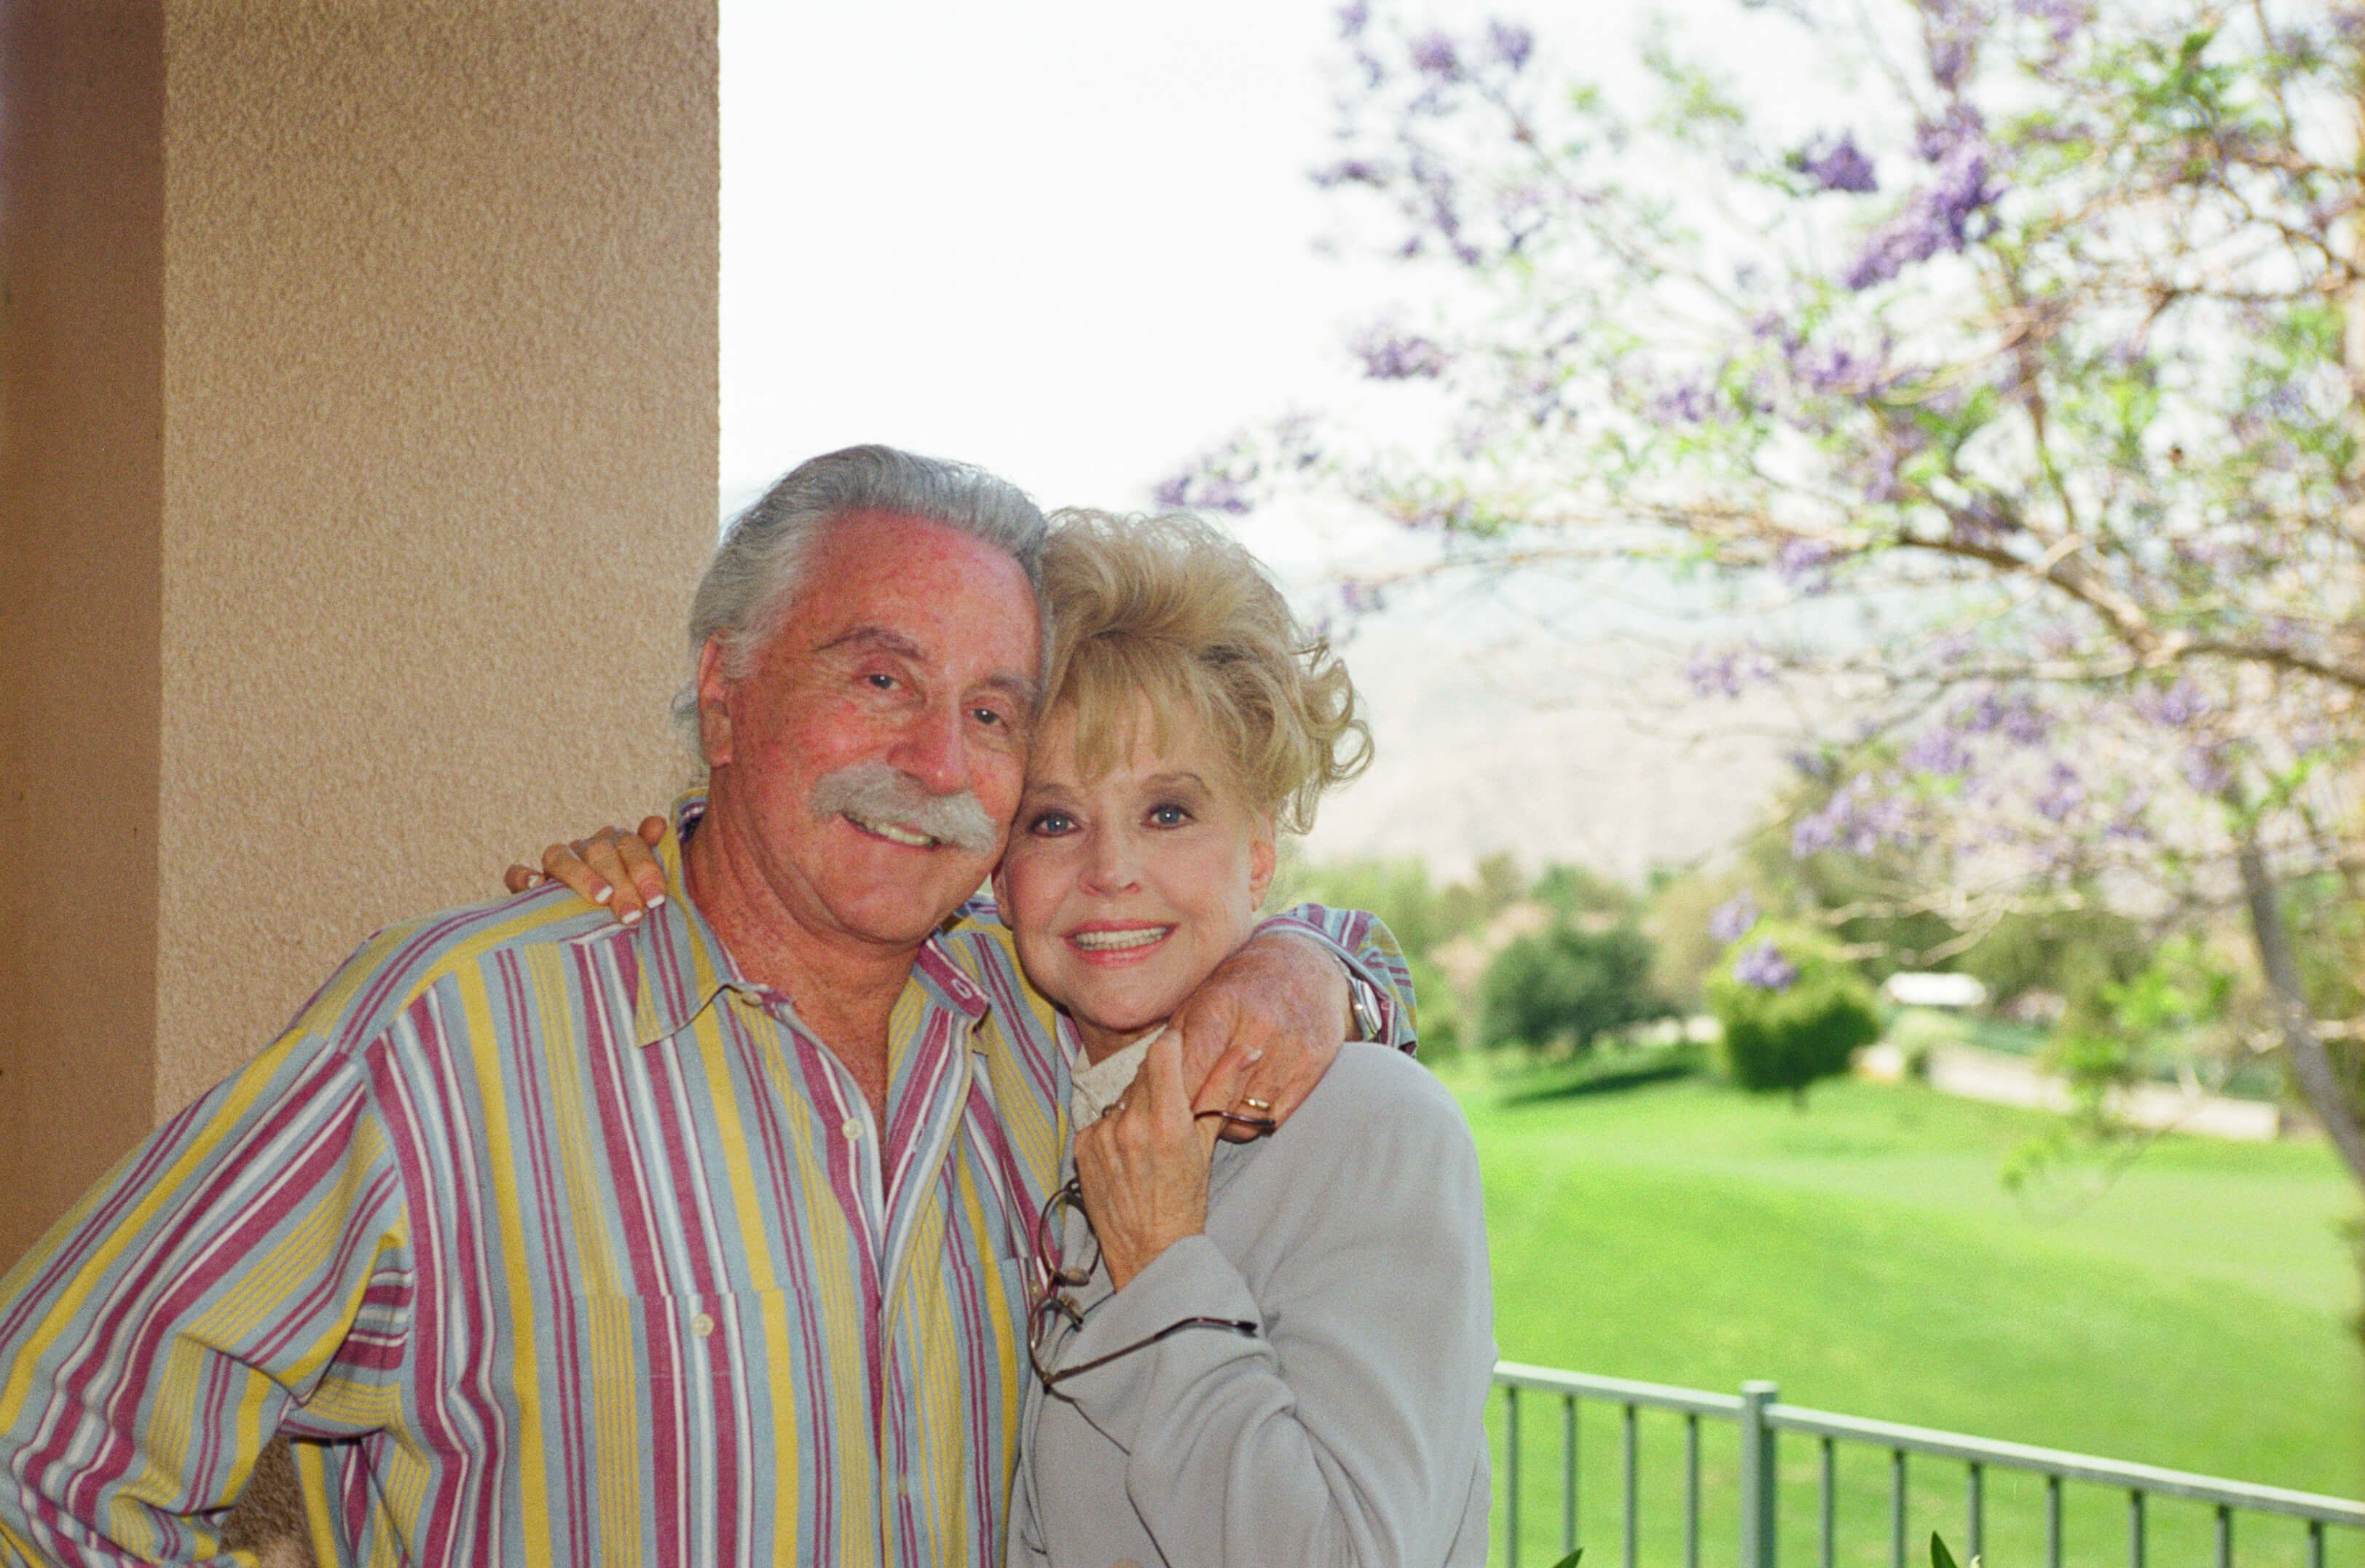 Betty and Joe Weider 4th of July 2005 Lou Ferrigno - YouTube